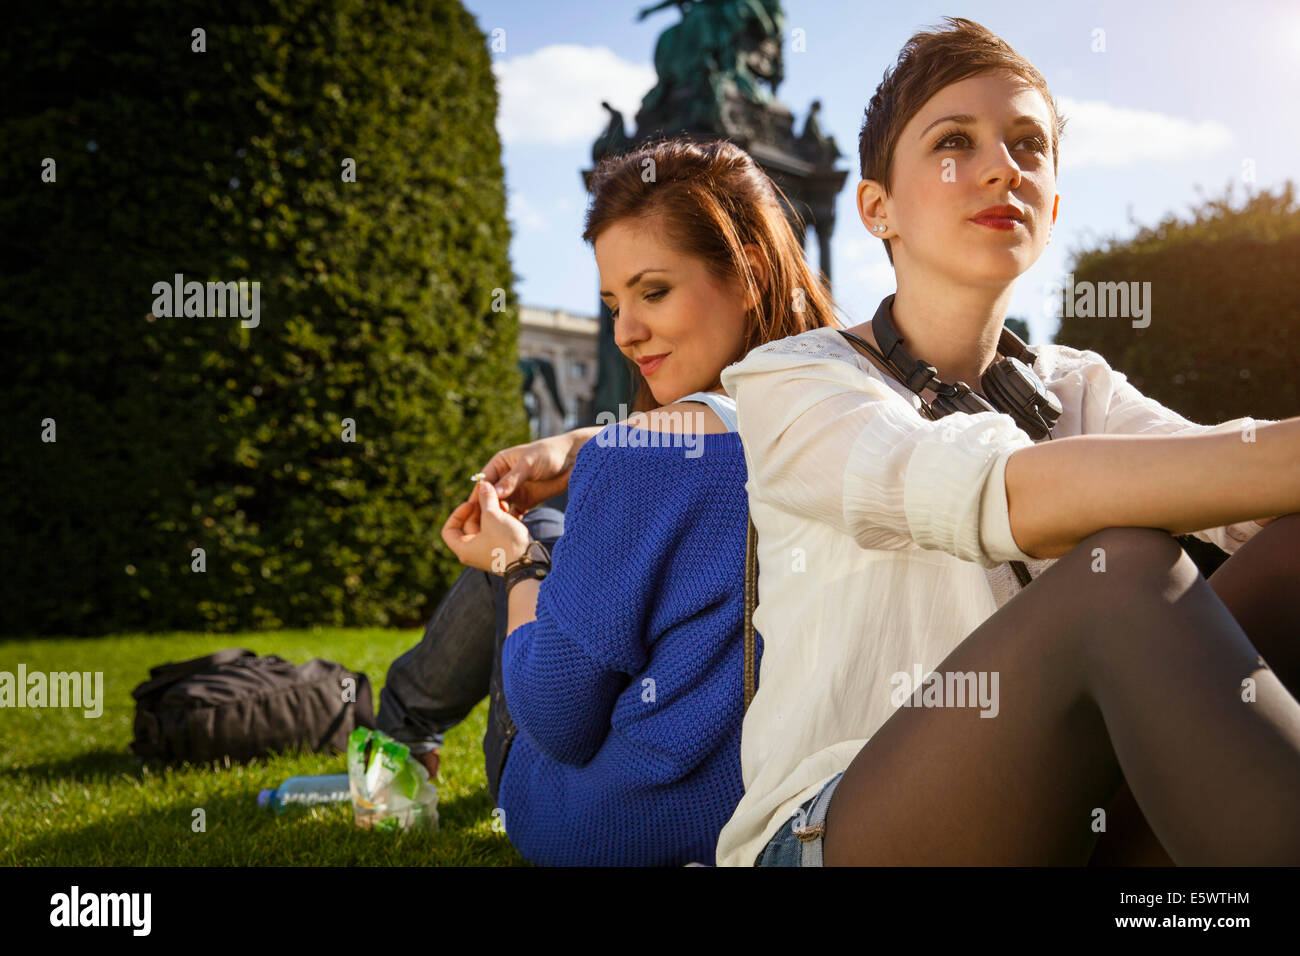 Two young adult women sitting back to back in park - Stock Image